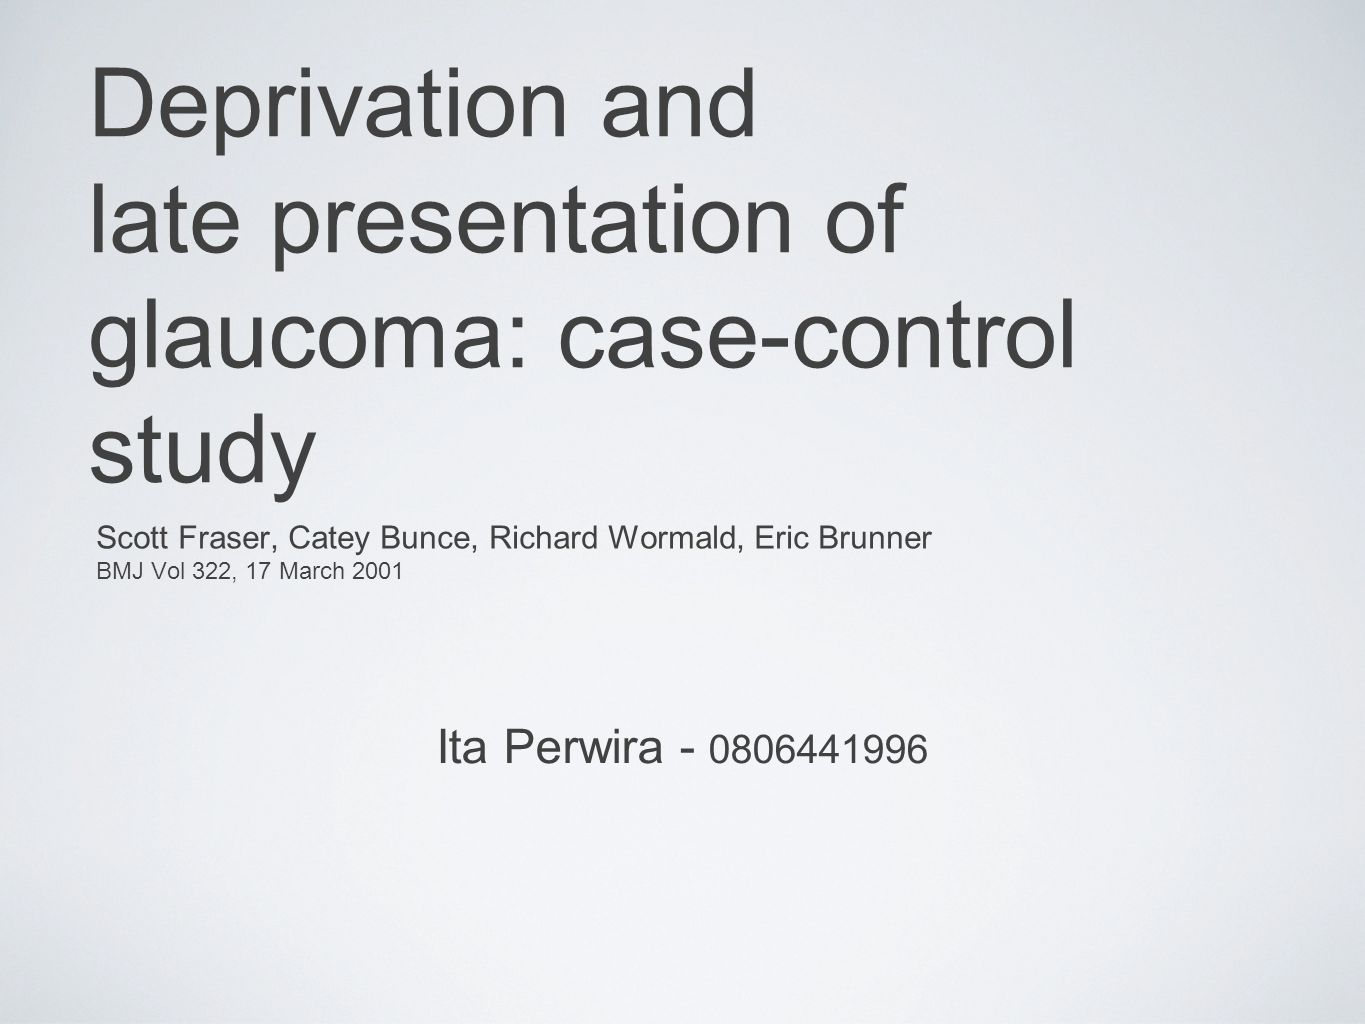 Deprivation and late presentation of glaucoma: case-control study Scott Fraser, Catey Bunce, Richard Wormald, Eric Brunner BMJ Vol 322, 17 March 2001 Ita Perwira - 0806441996